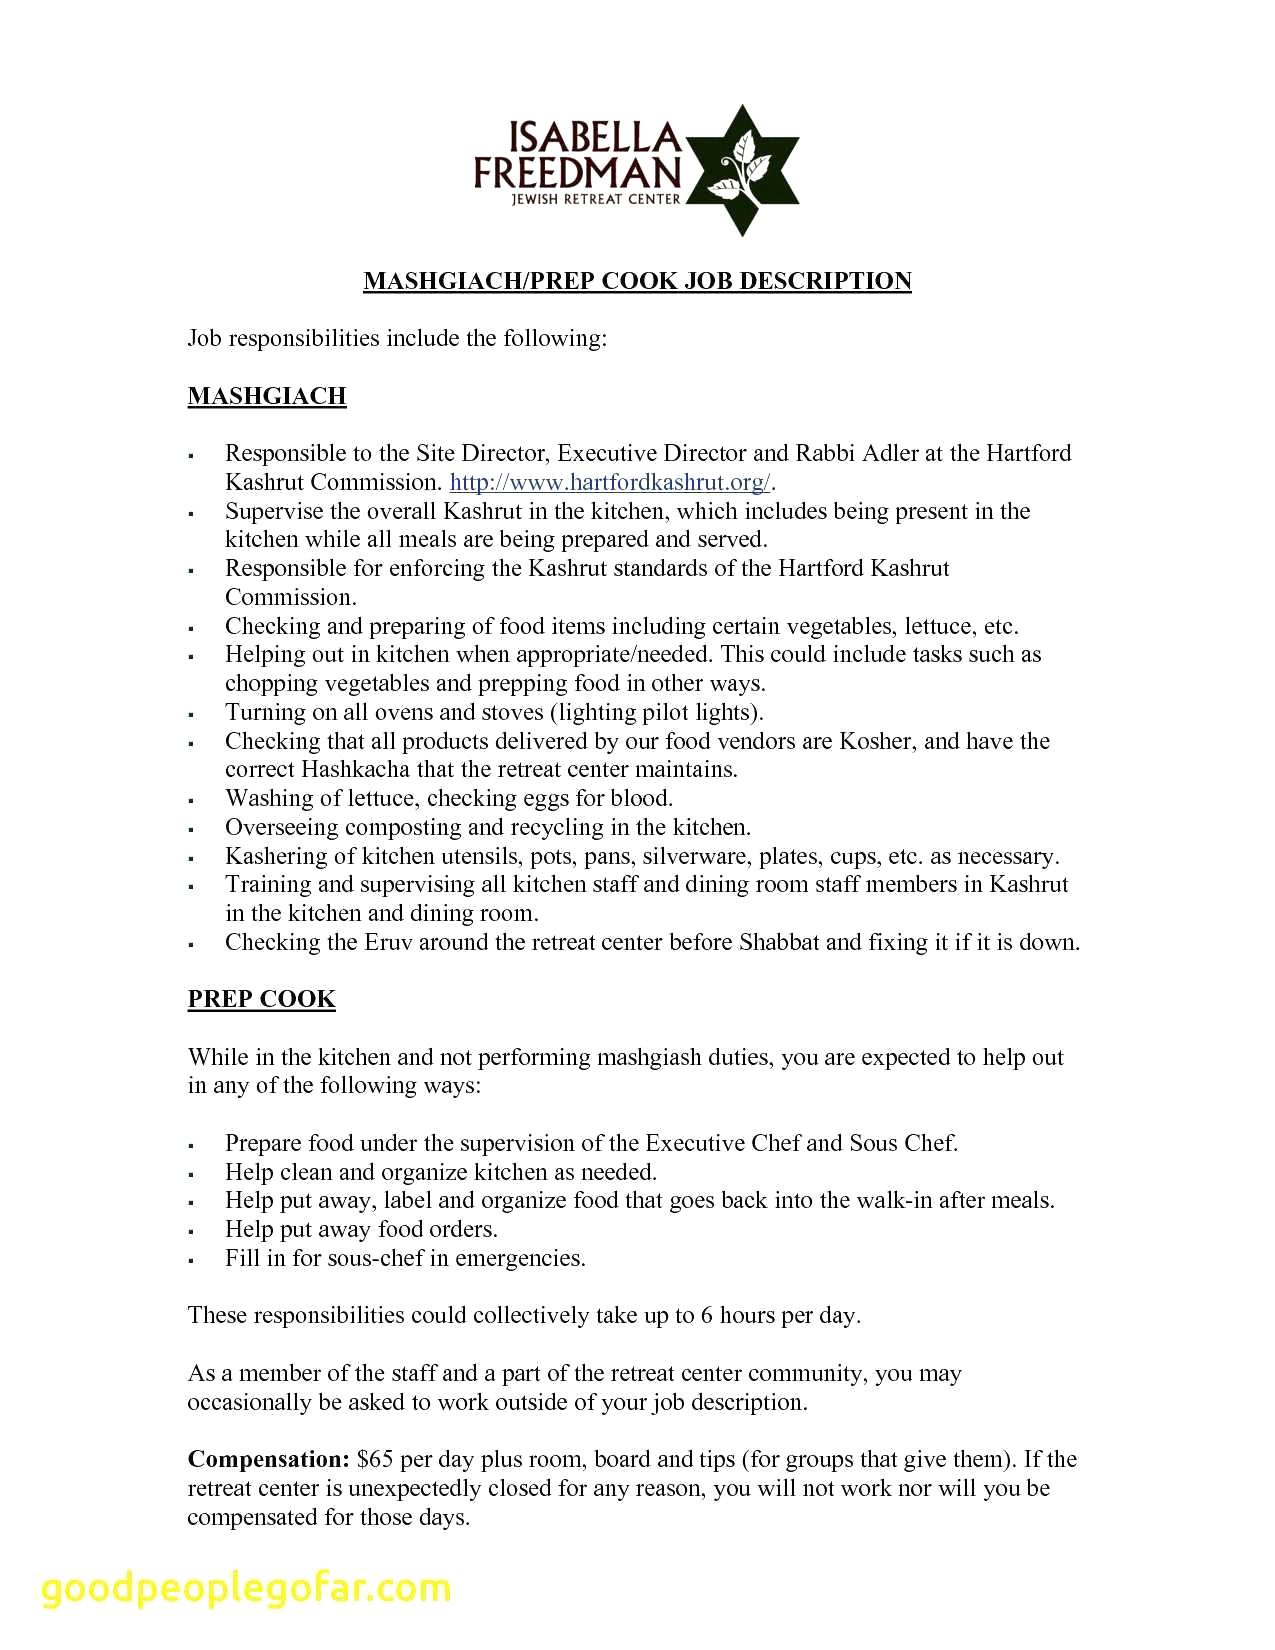 Salesman Duties and Responsibilities Resume - 37 Inspirational Sales Representative Resume